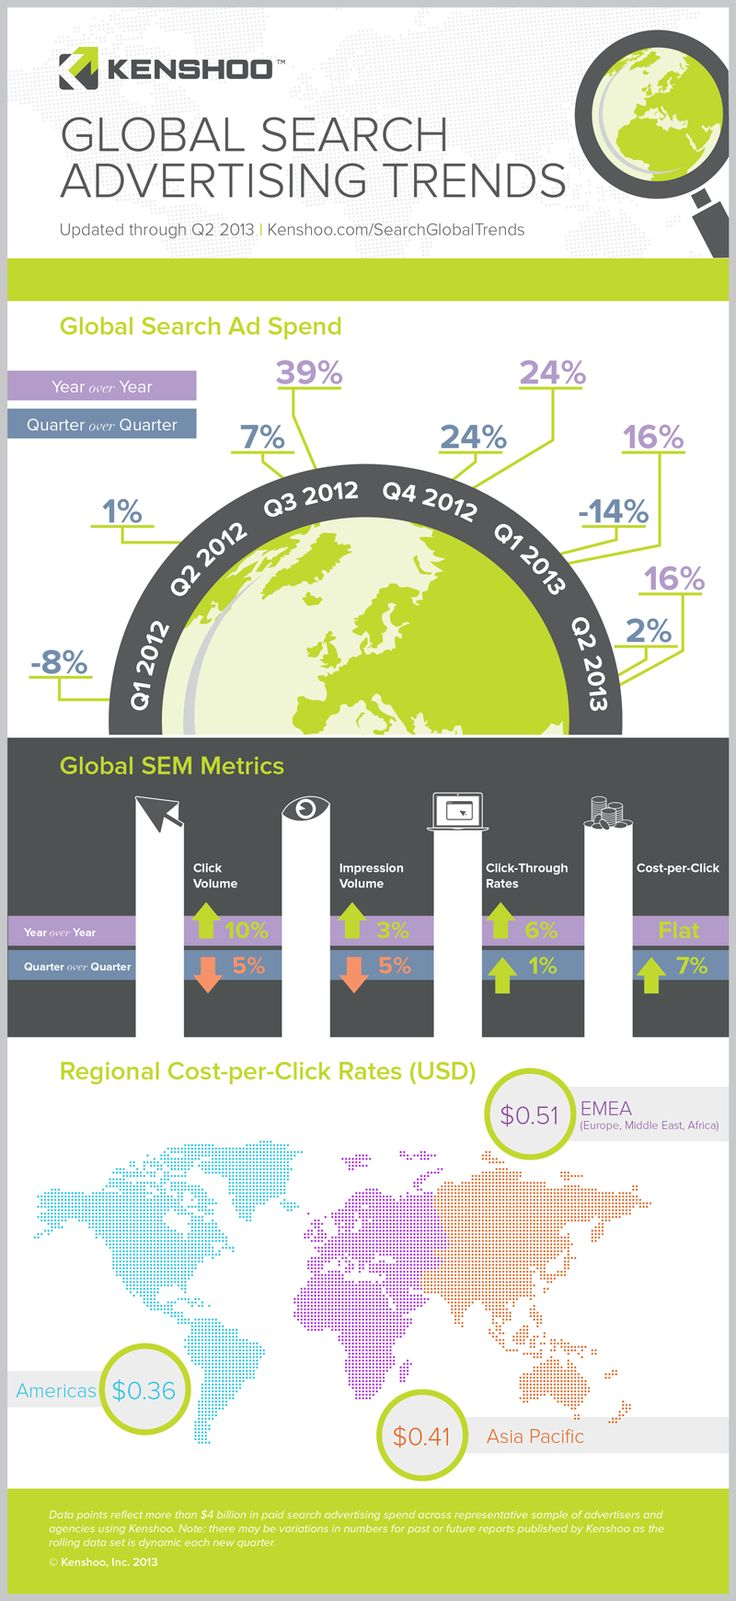 Check out Kenshoo's infographic on global search advertising trends through Q2. http://selnd.com/15D0ddu #search #advertising #marketing